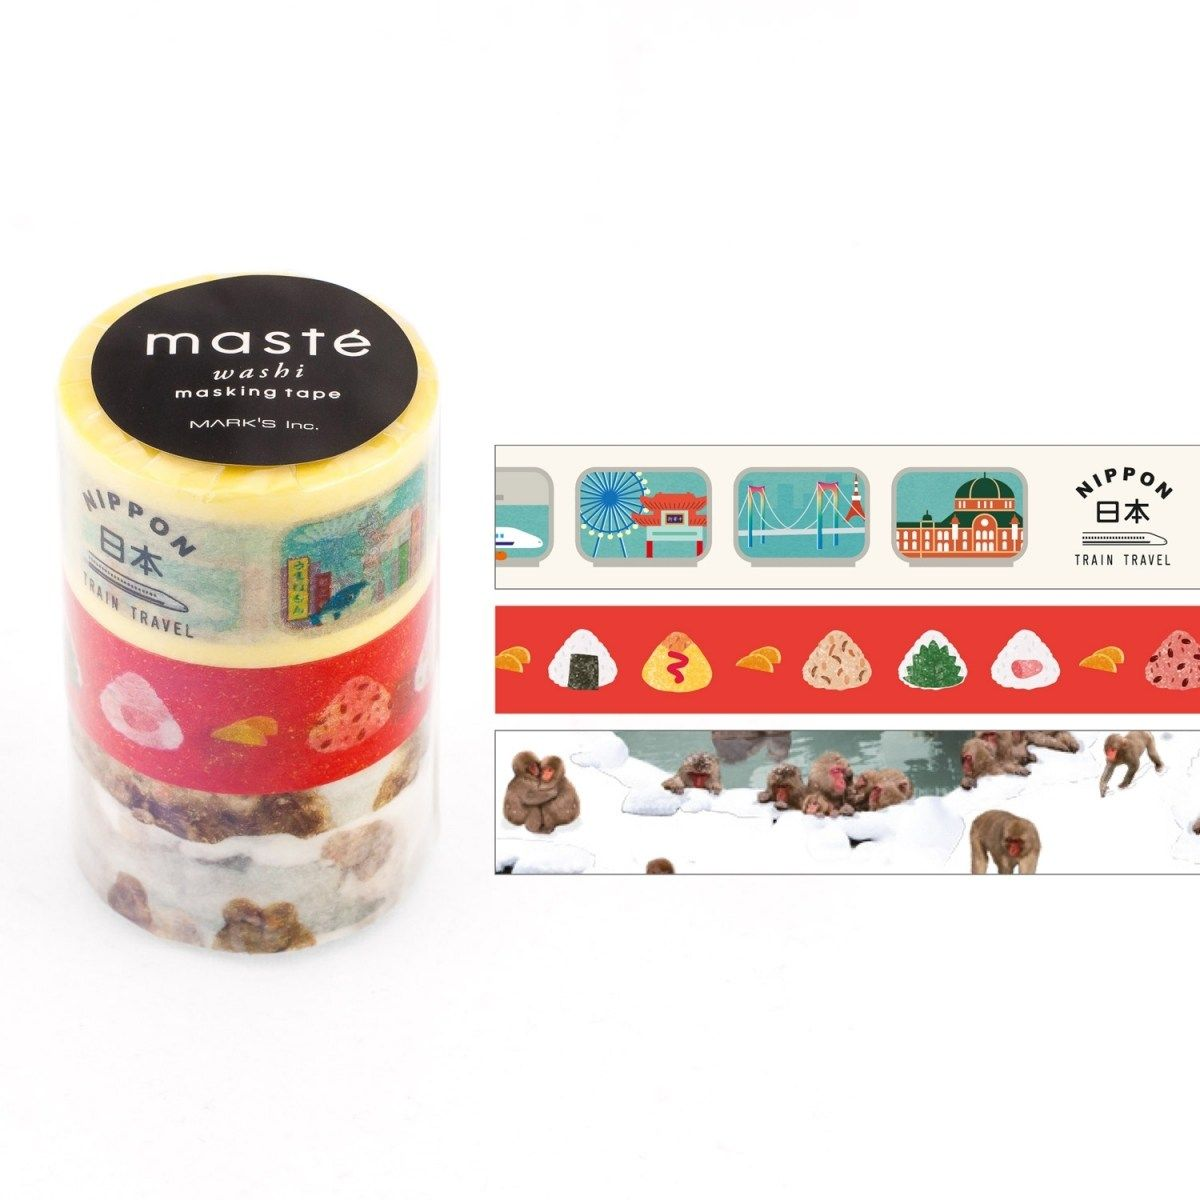 WASHI TAPE MASTÉ TRAVEL 1 KIT C/ 3